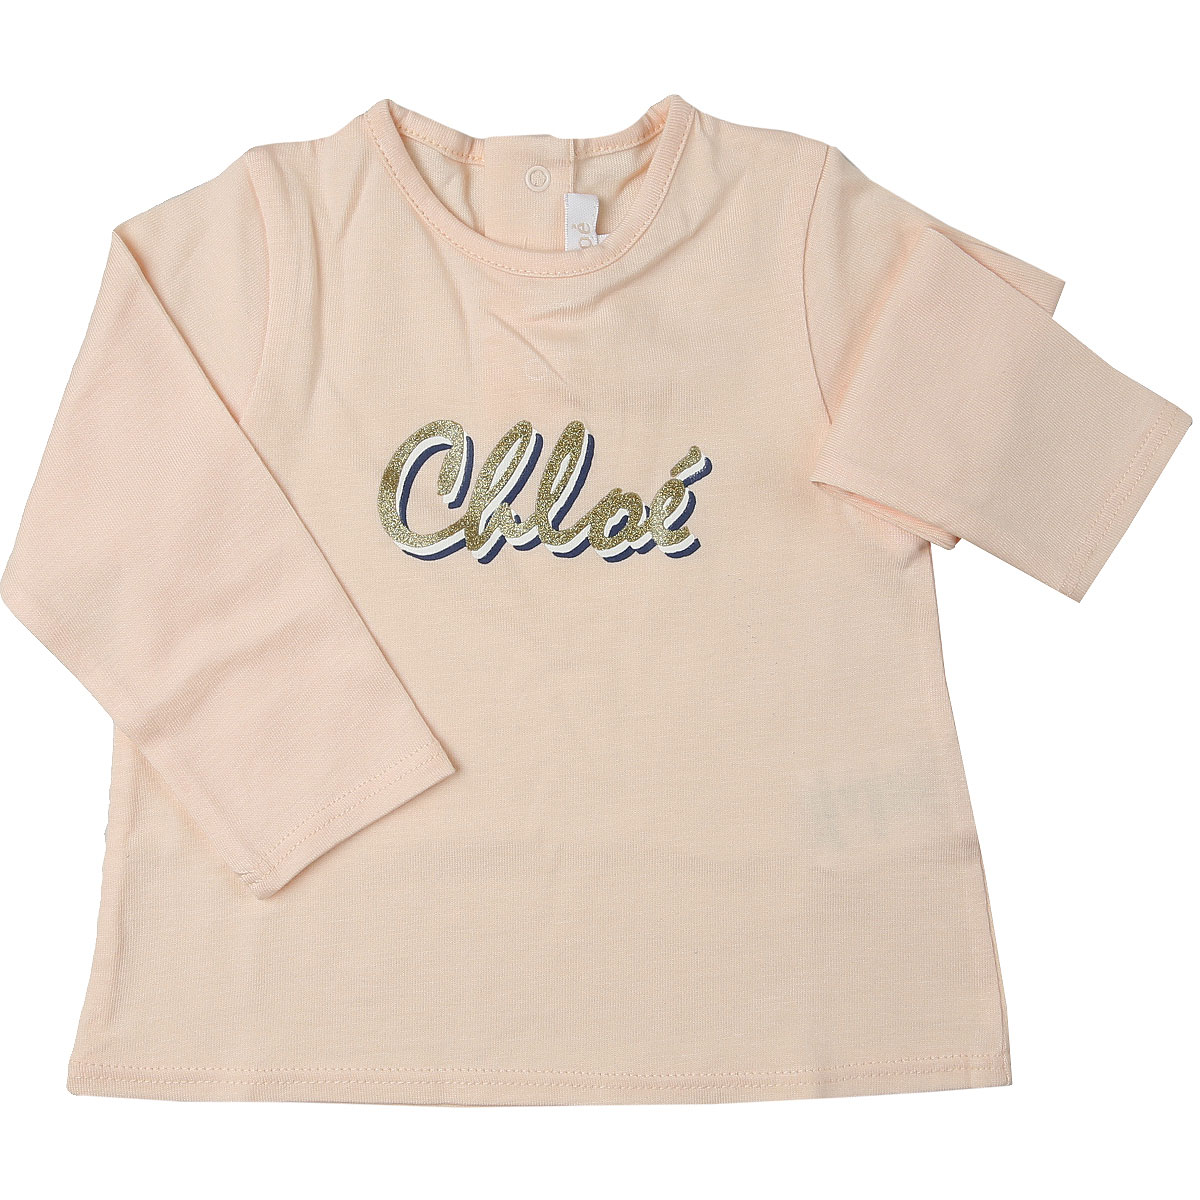 Chloe Baby T-Shirt for Girls On Sale, Pink, Cotton, 2019, 12M 2Y 3Y 6M 9M